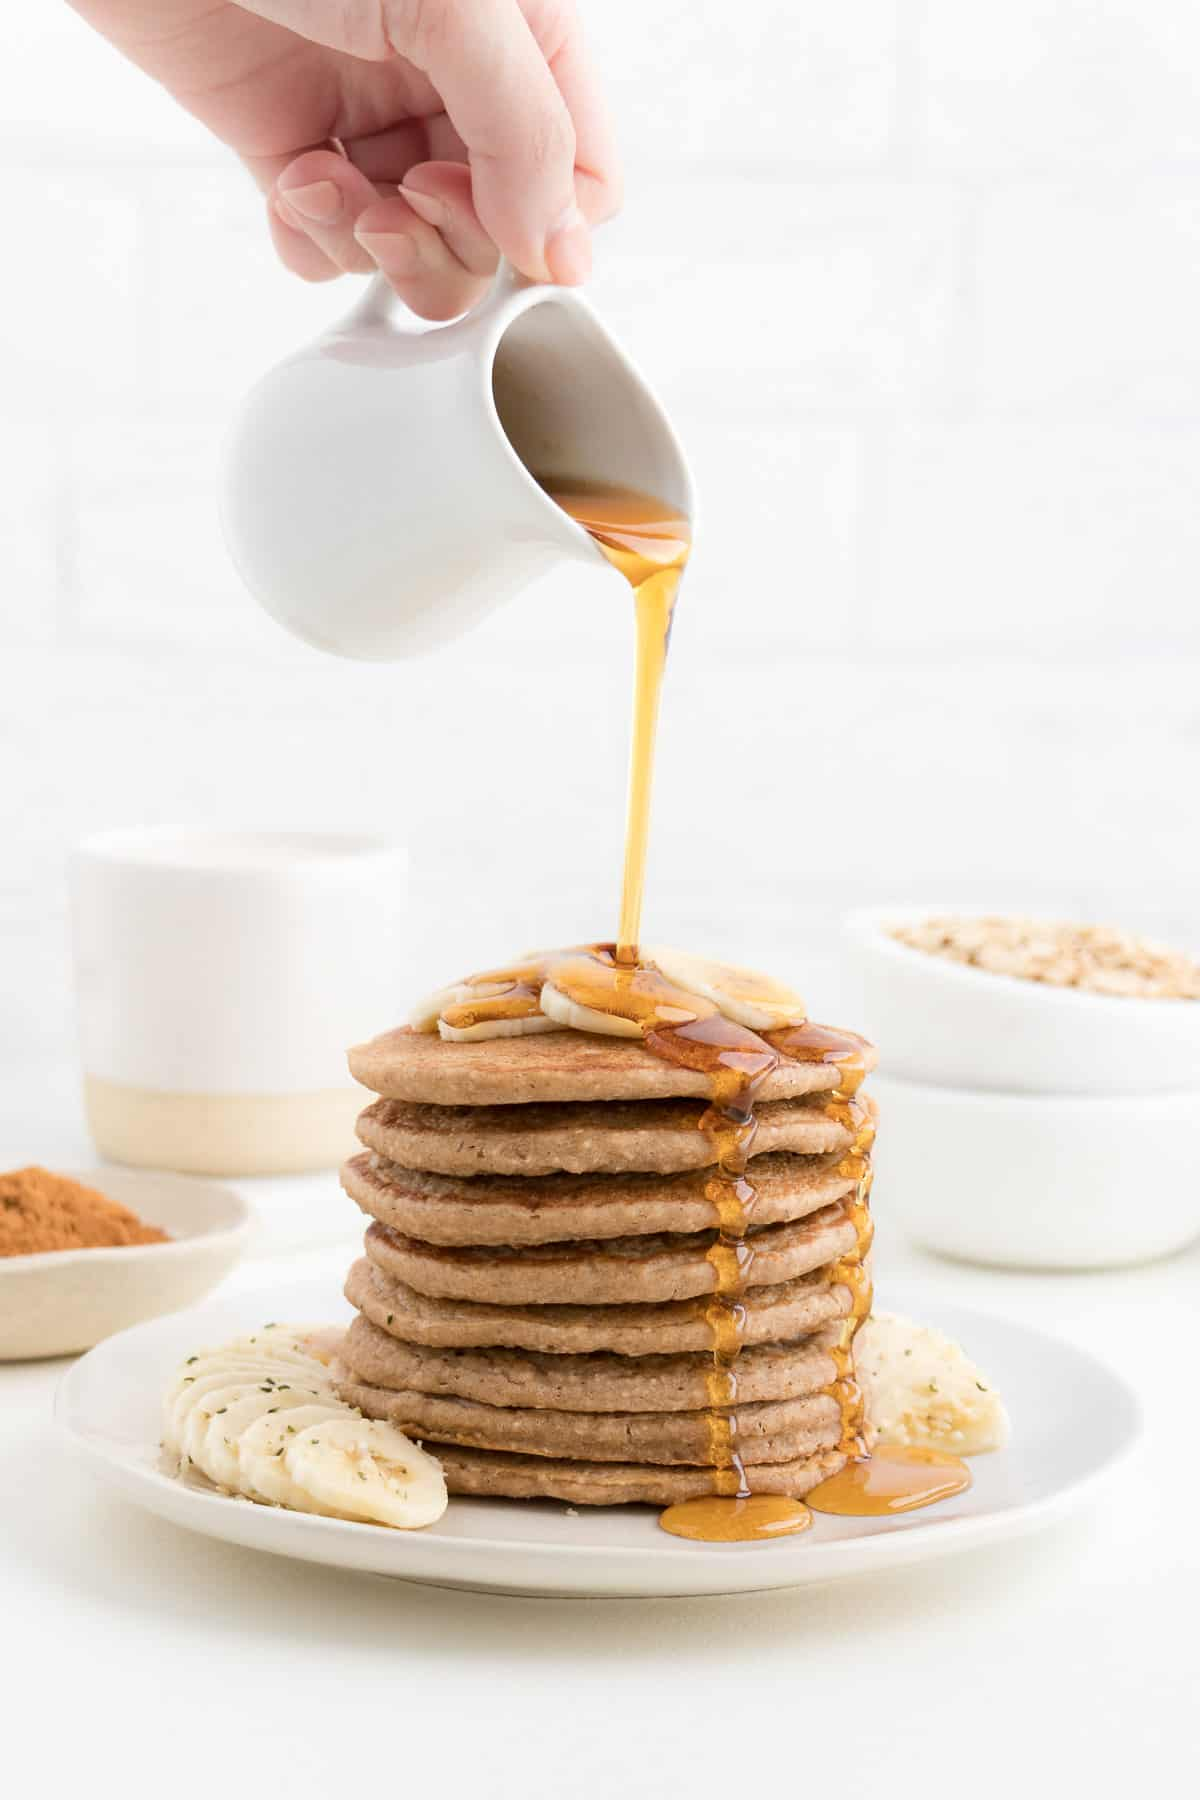 hand pouring maple syrup over a pancake stack topped with banana slices